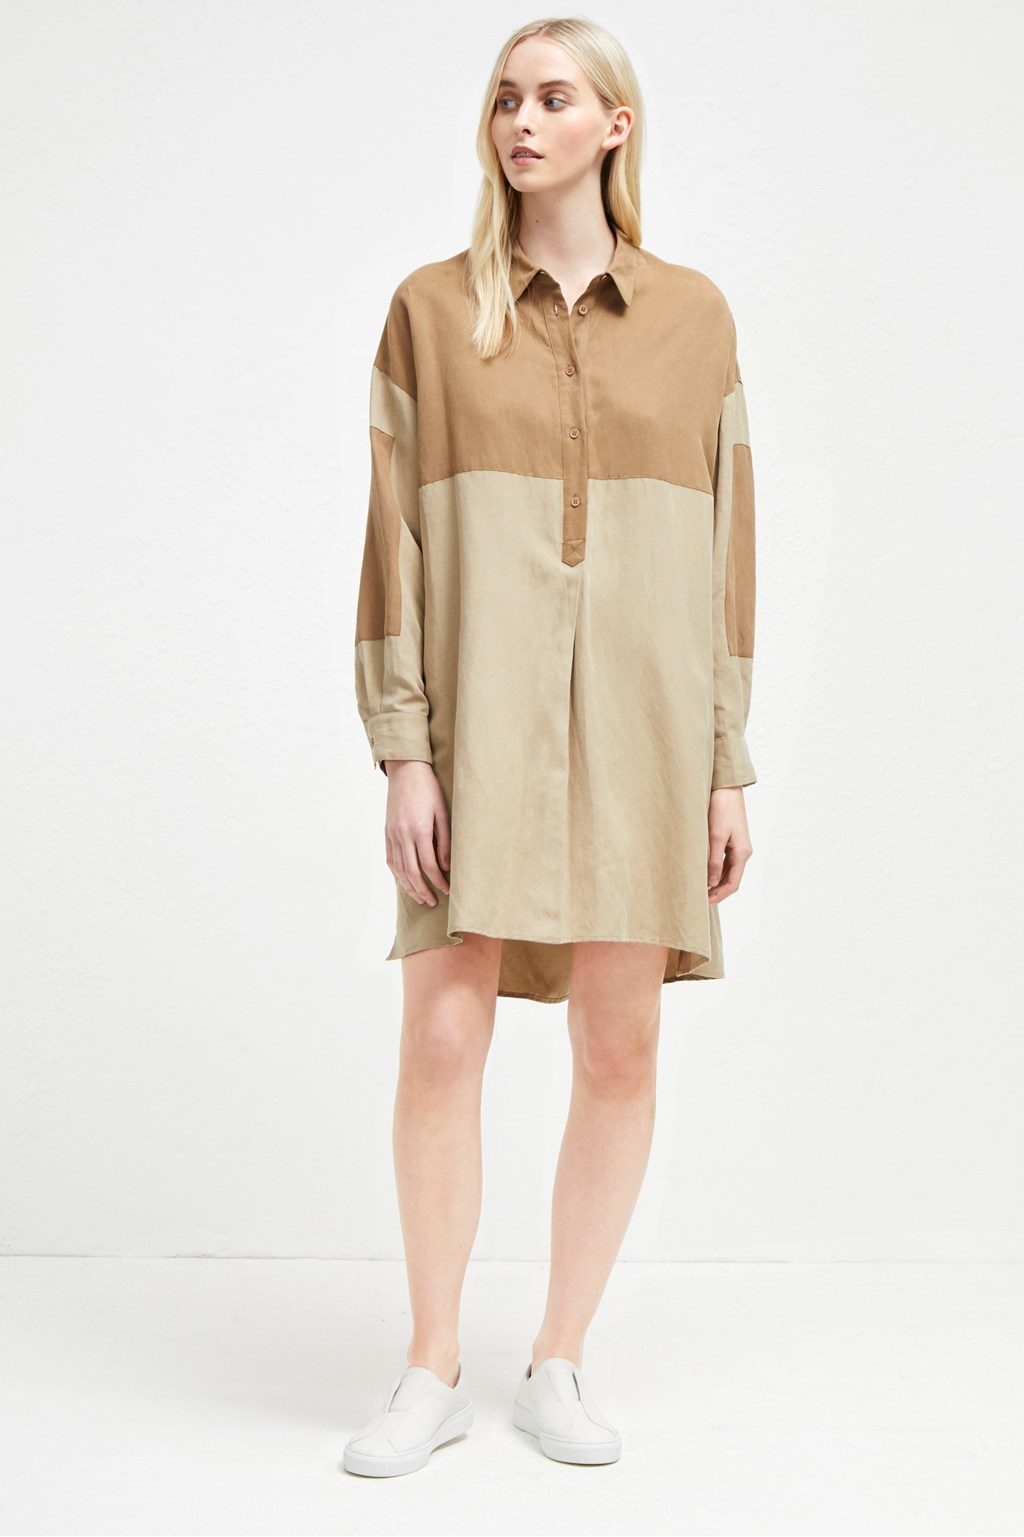 Caspia Linen Shirt Dress Lace French Connection Usa